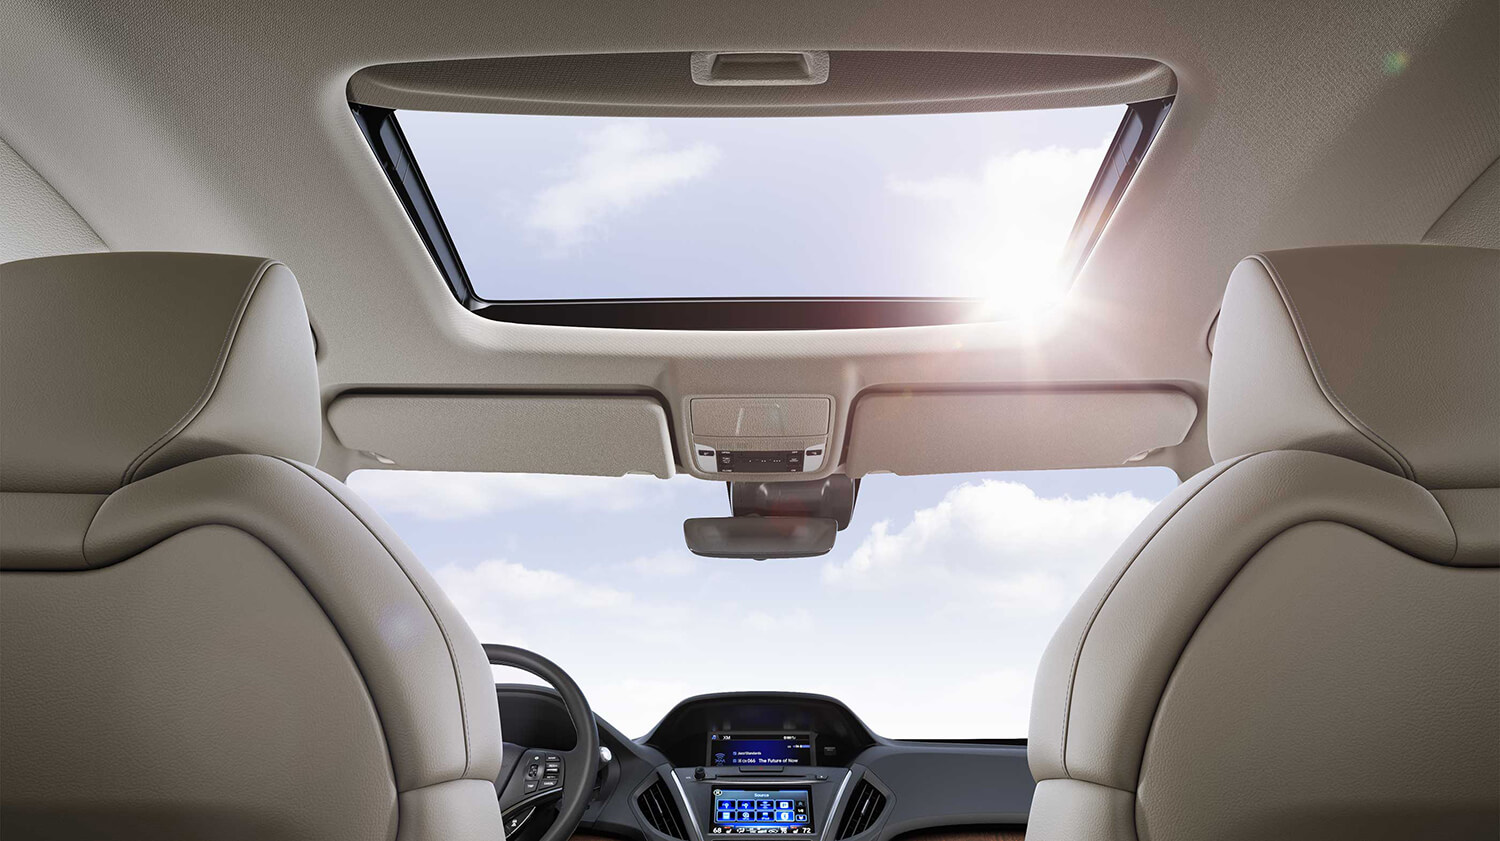 MDX Power Moonroof